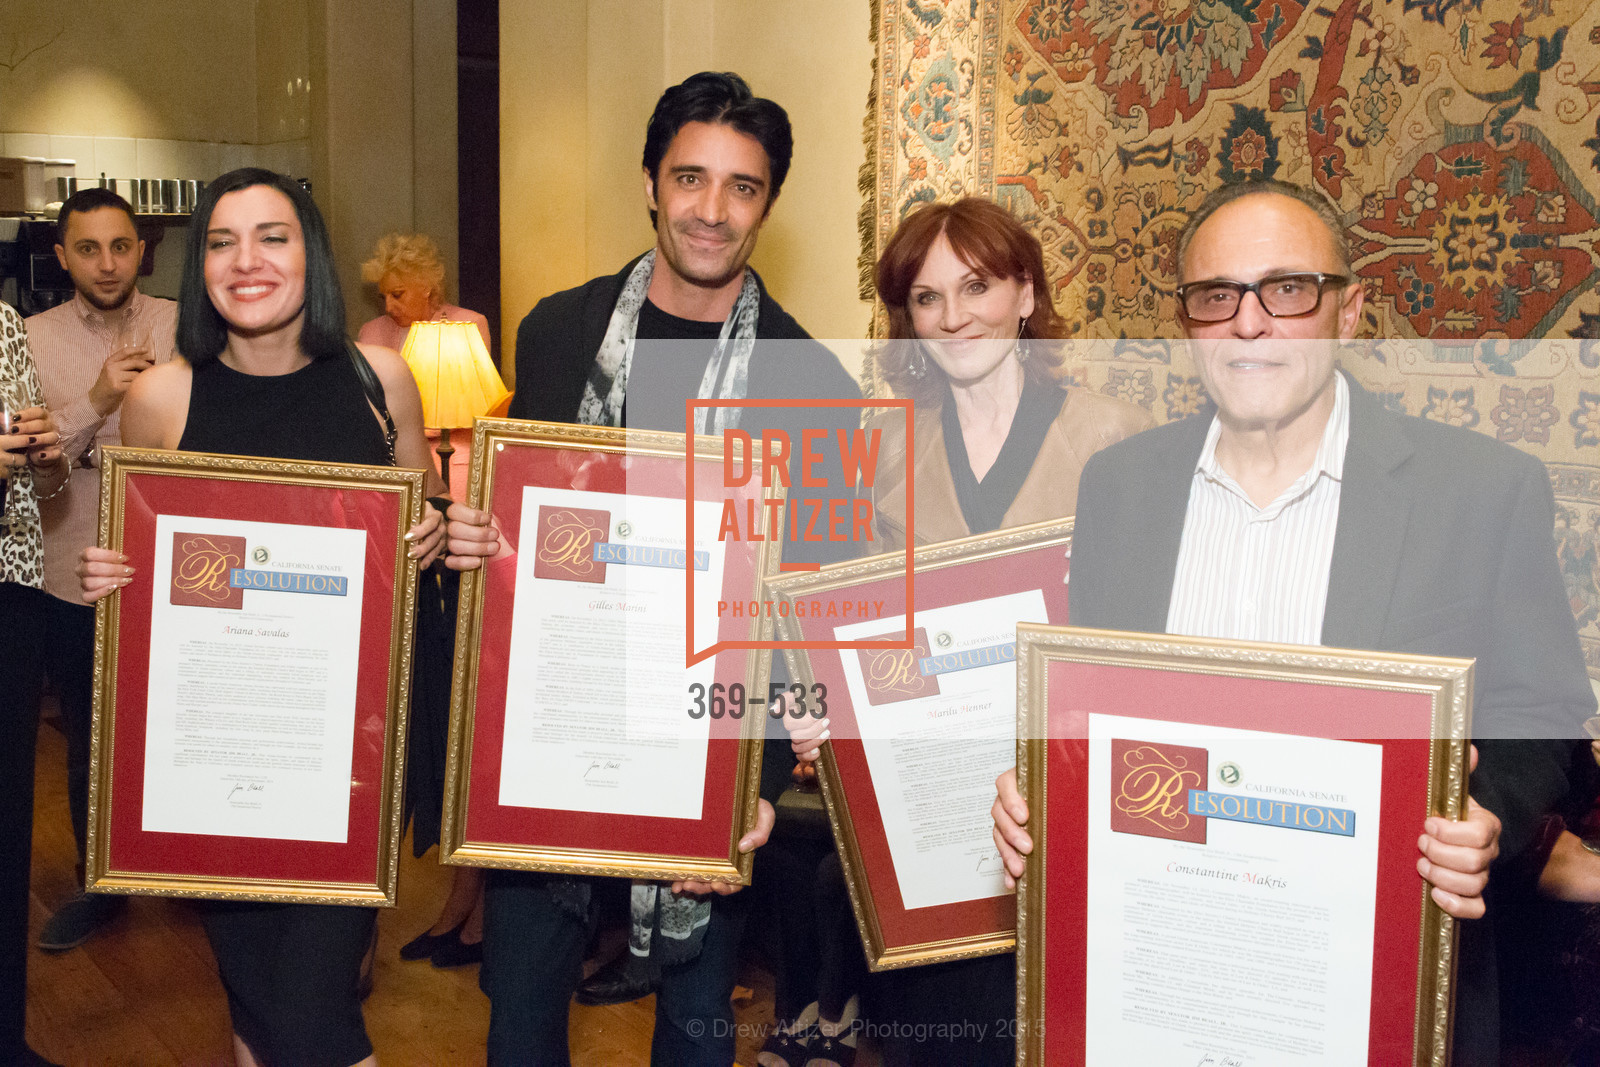 Ariana Savalas, Gilles Marini, Marilu Henner, Constantine Makris, Hellenic Charity Ball Cocktail Reception, Kokkari. 200 Jackson St, San Francisco, CA 94111, November 13th, 2015,Drew Altizer, Drew Altizer Photography, full-service agency, private events, San Francisco photographer, photographer california